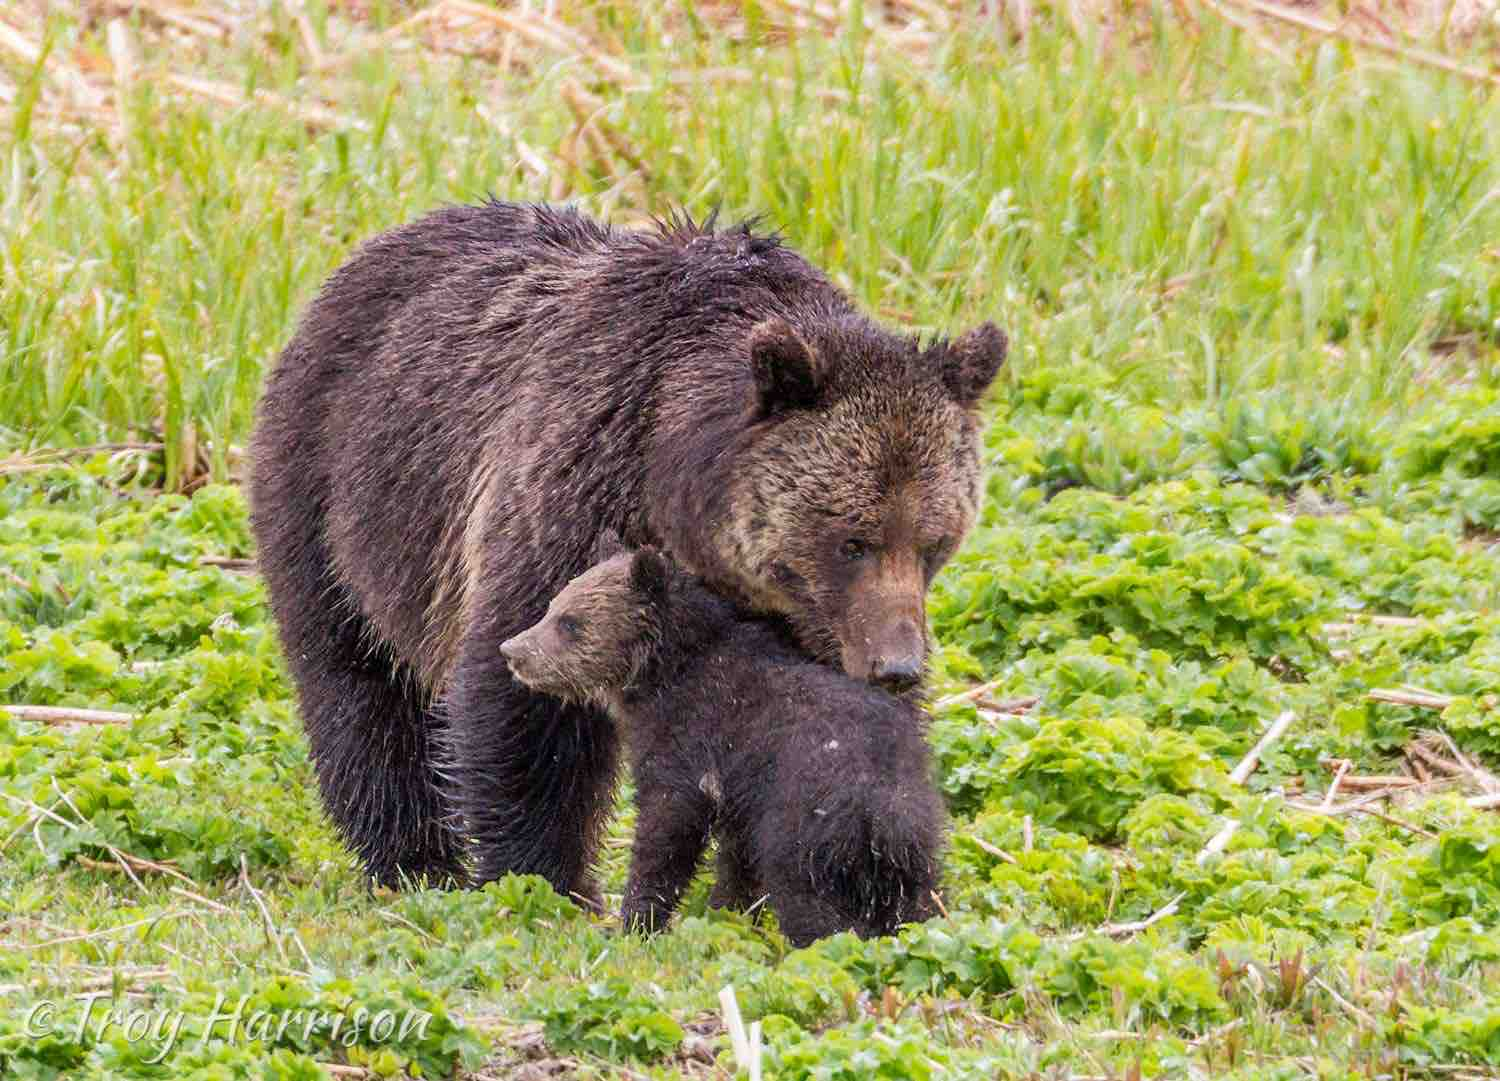 Grizzly bear nuzzling her cub in Yellowstone National Park.